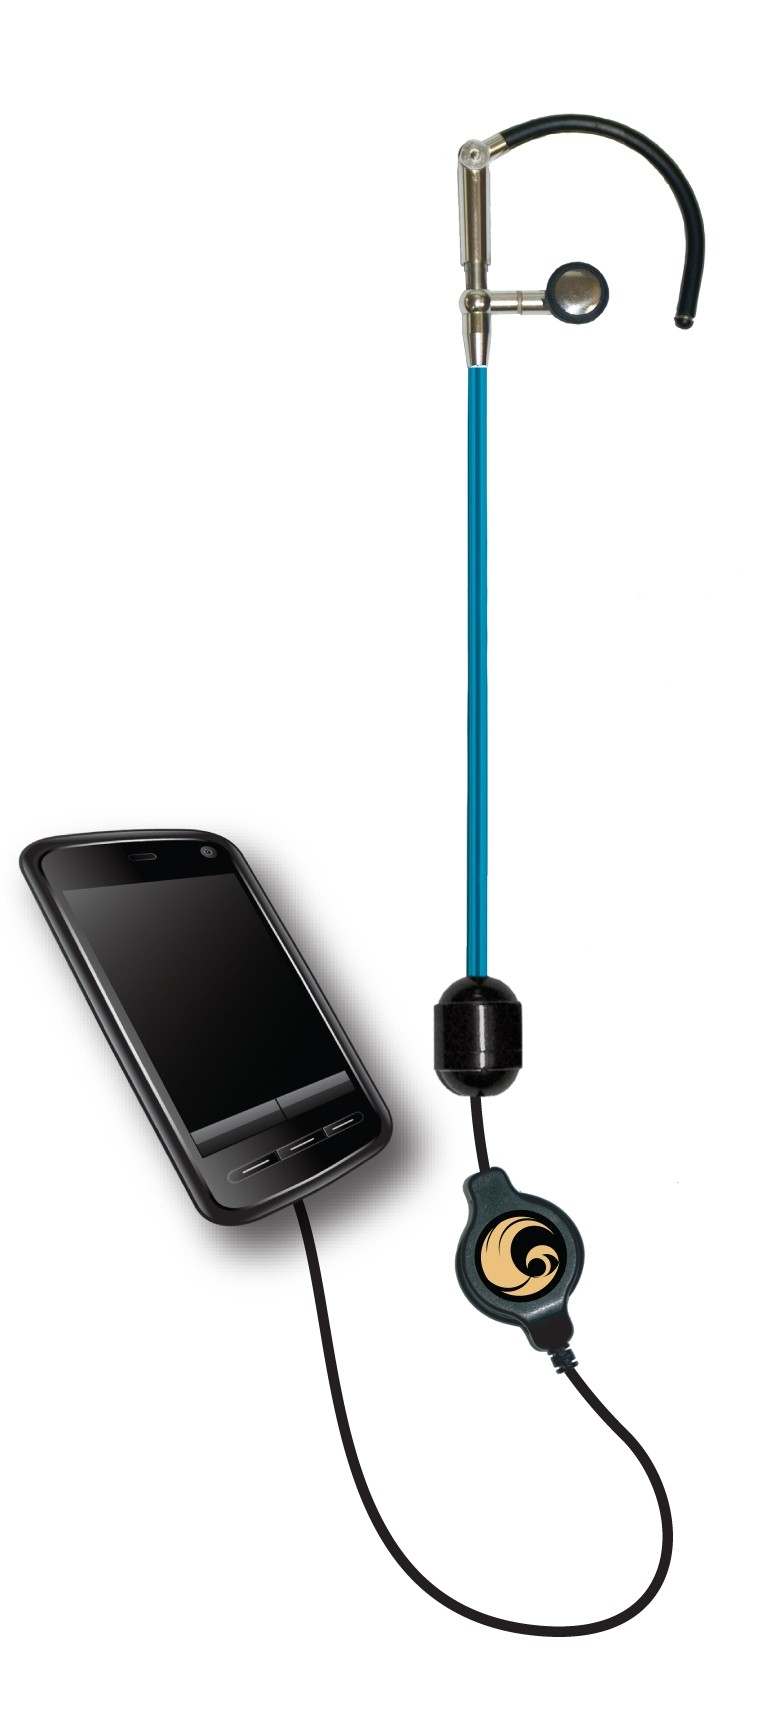 LIFE Blue Tube headset ear hook with phone